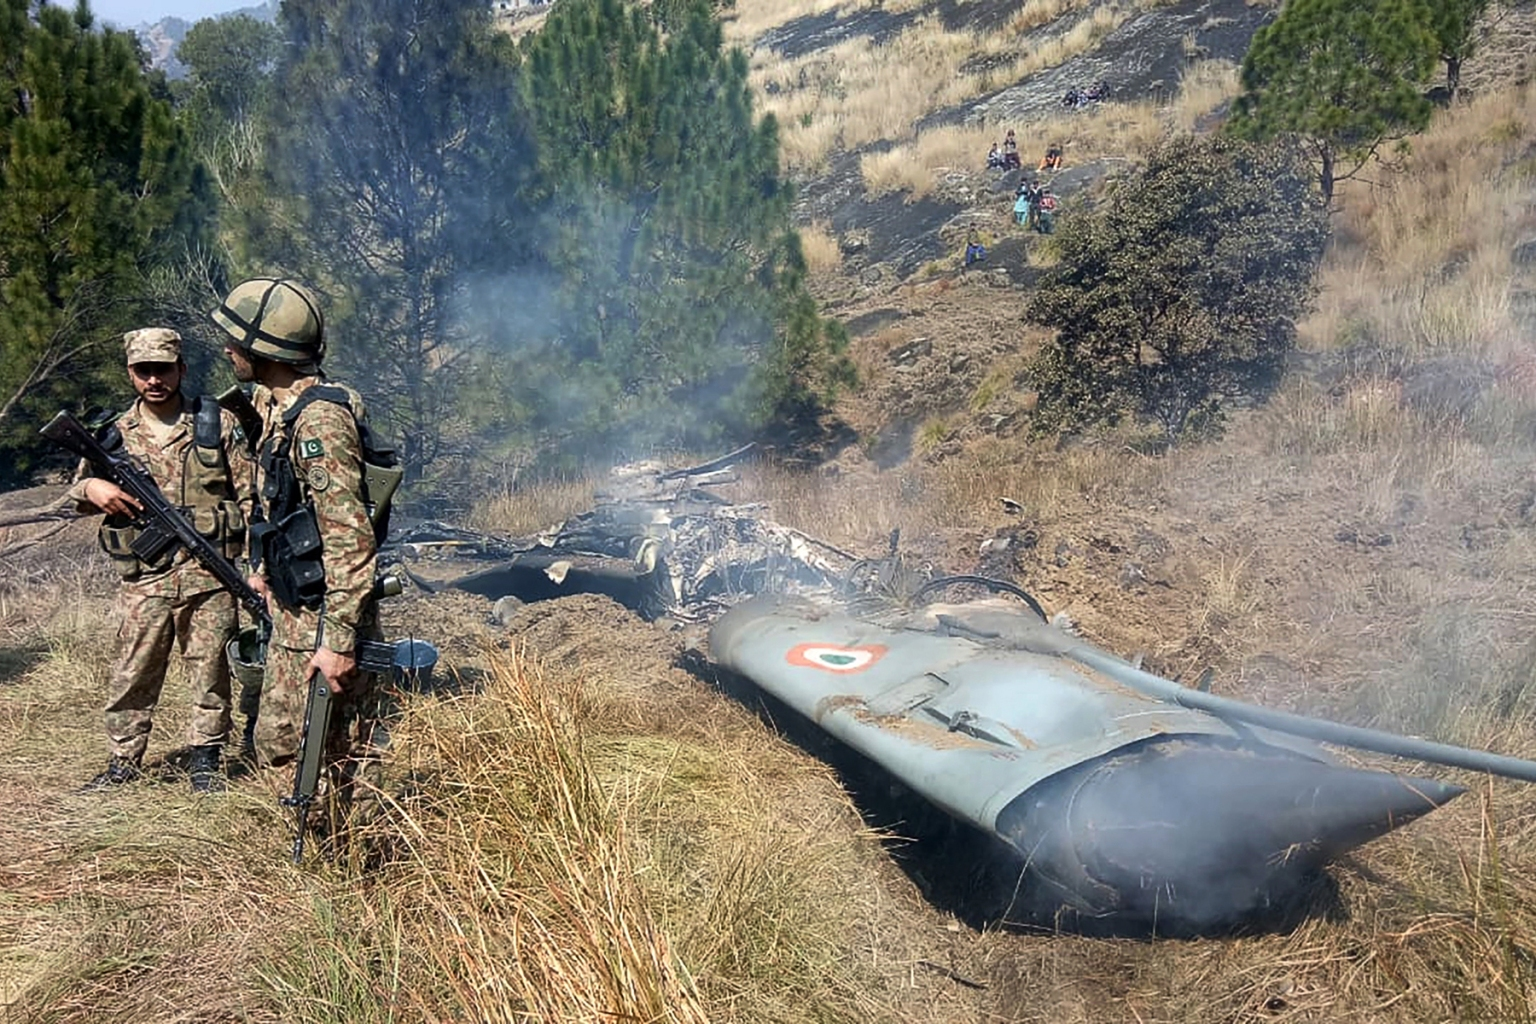 Pakistani soldiers stand next to what Pakistan says is the wreckage of an Indian fighter jet shot down in Pakistan-controlled Kashmir at Somani area in Bhimbar district near the Line of Control on Feb. 27. STR/AFP/Getty Images